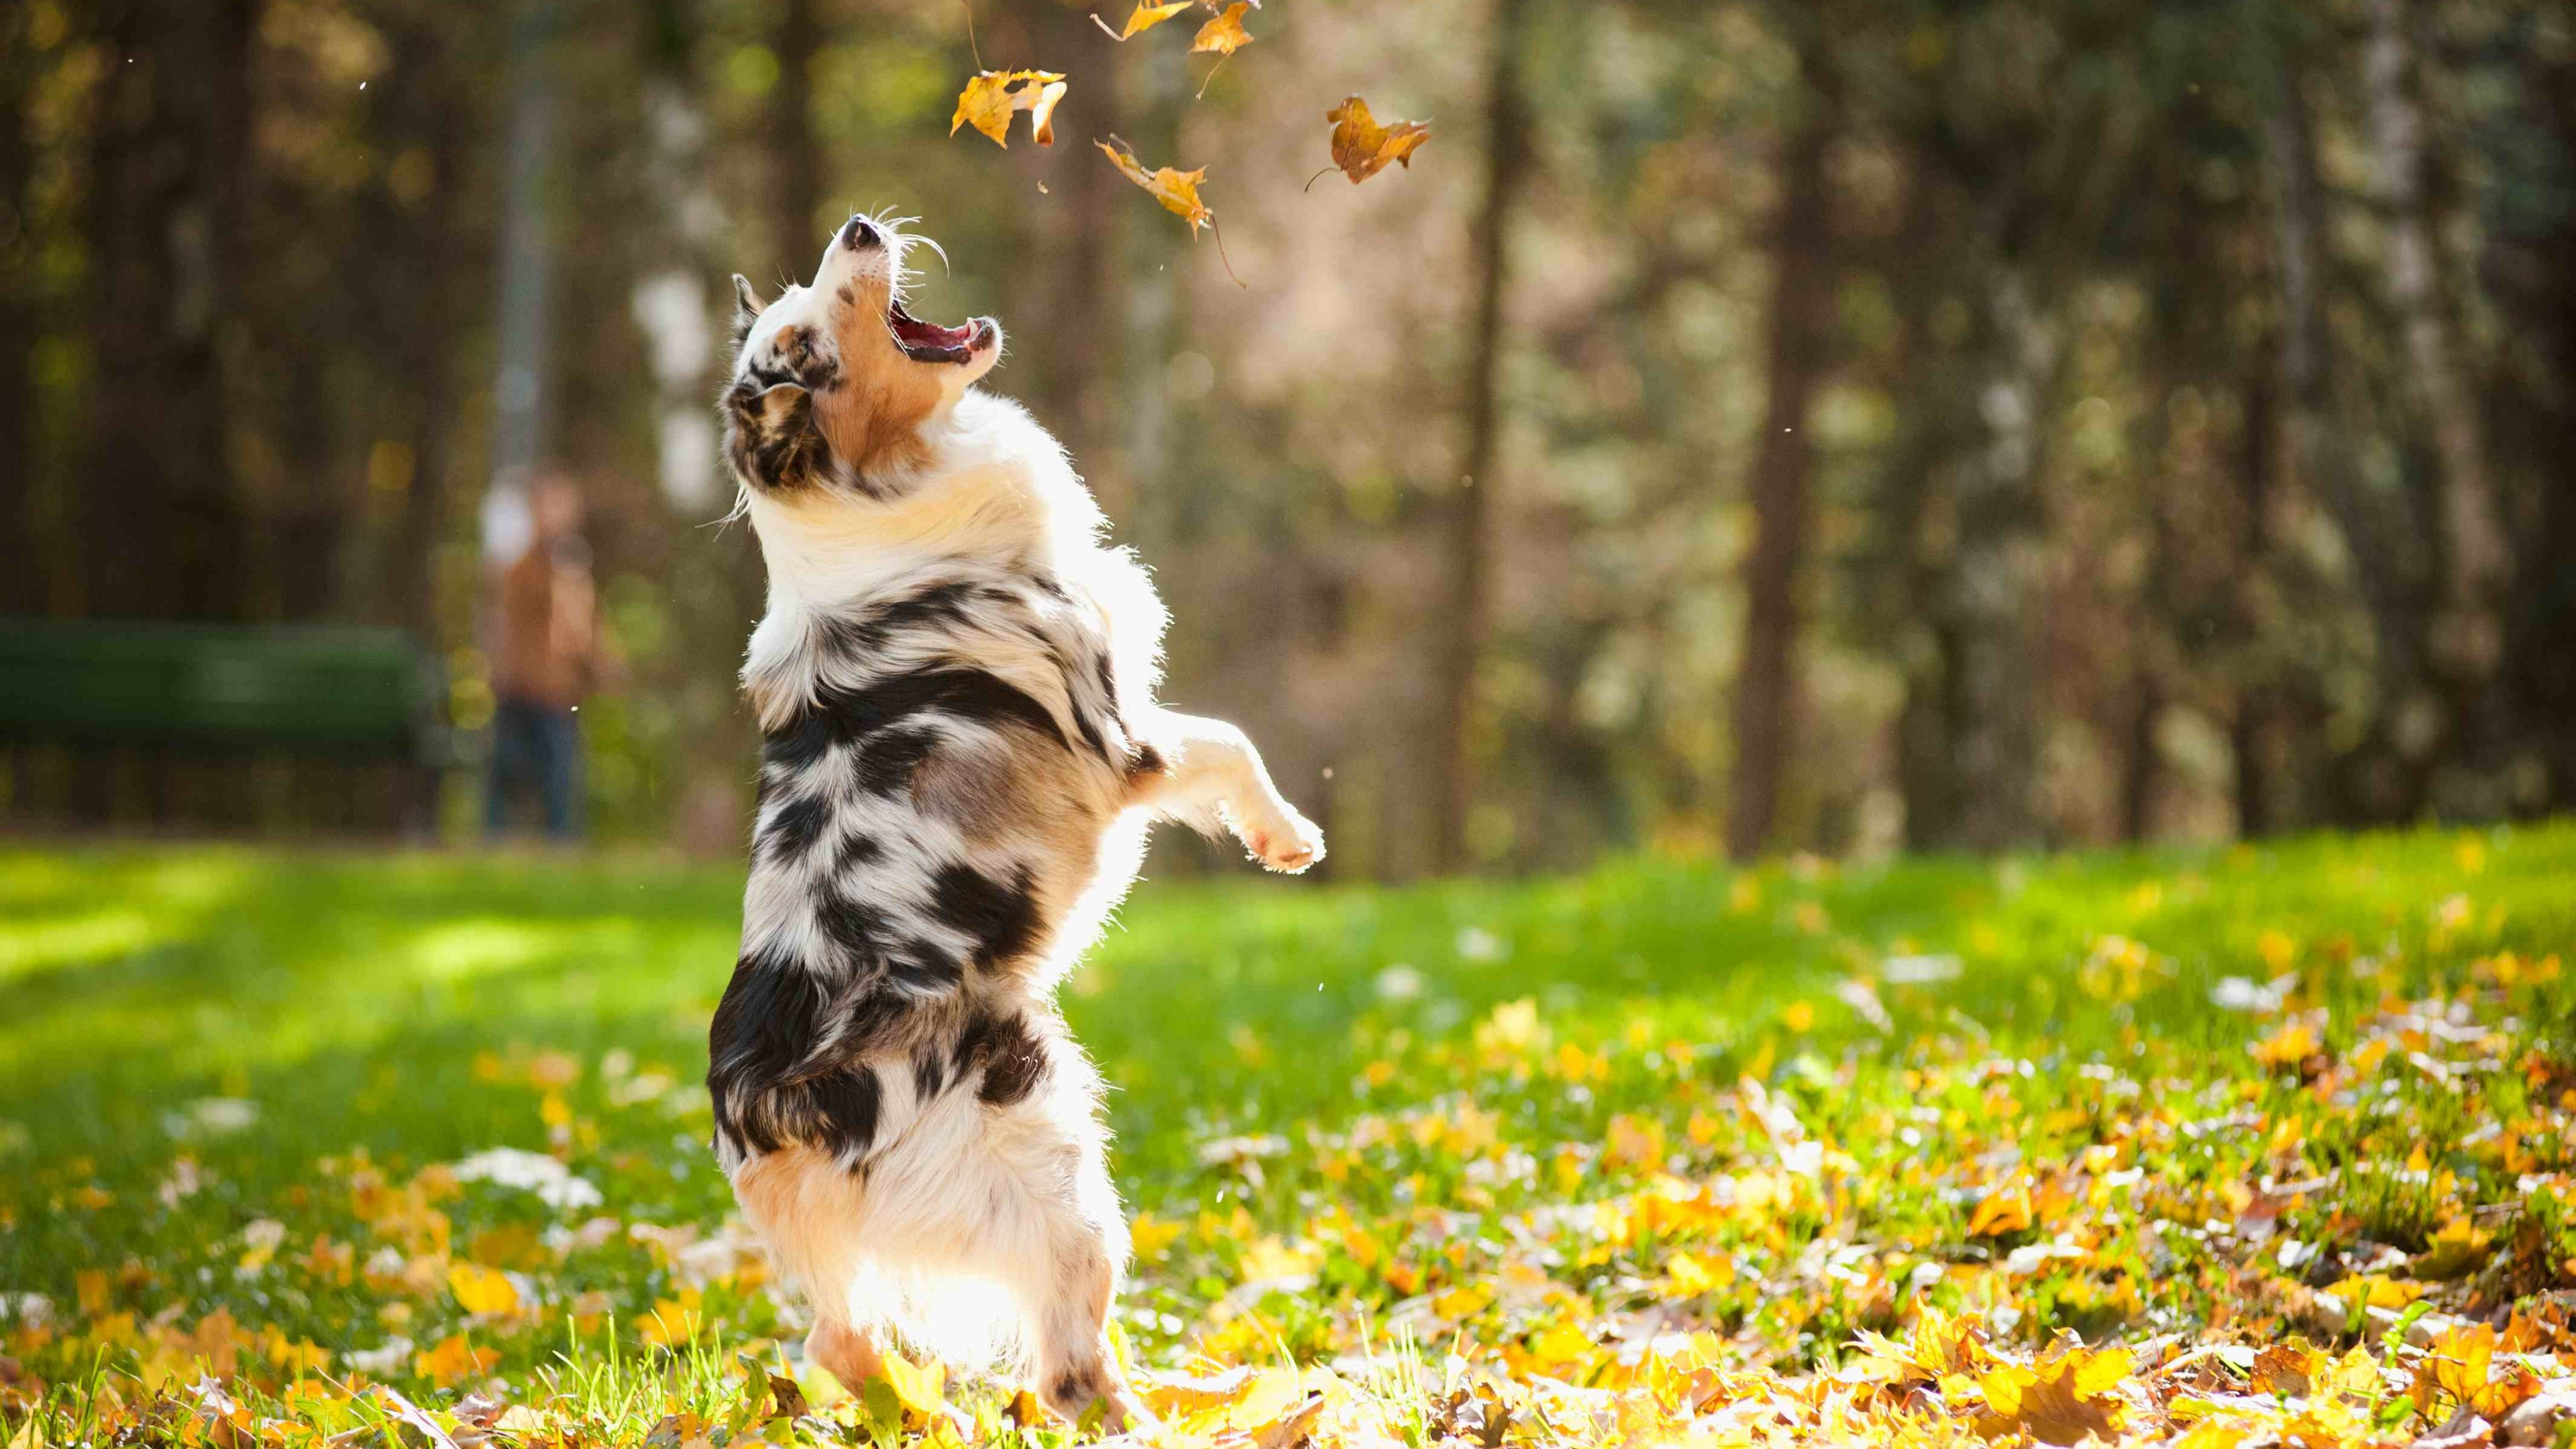 Wallpaper Dog Puppy Jumping Leaves Autumn Pet Green